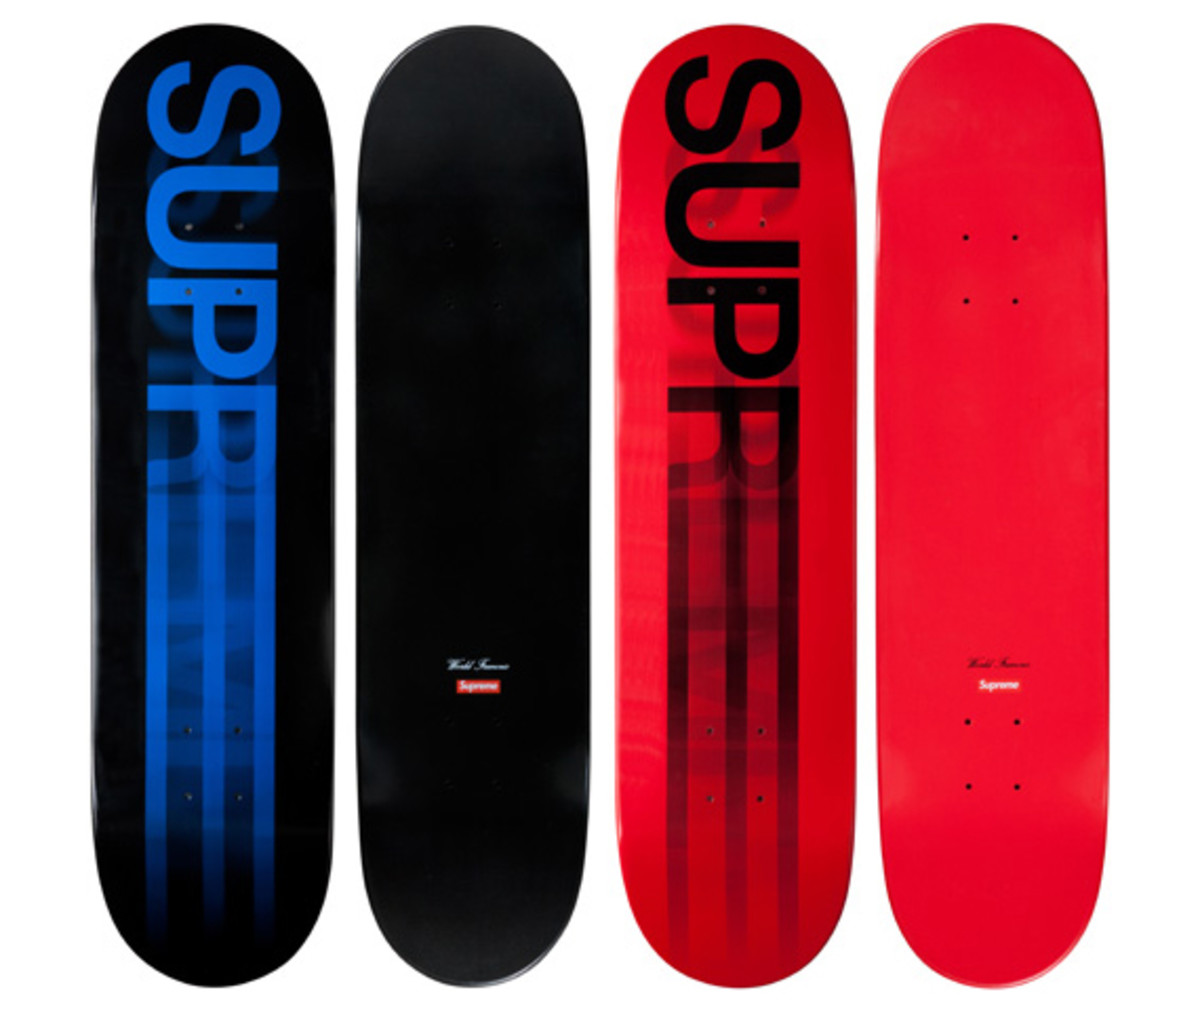 supreme-nyc-surfstyle-small-cruiser-decks-02